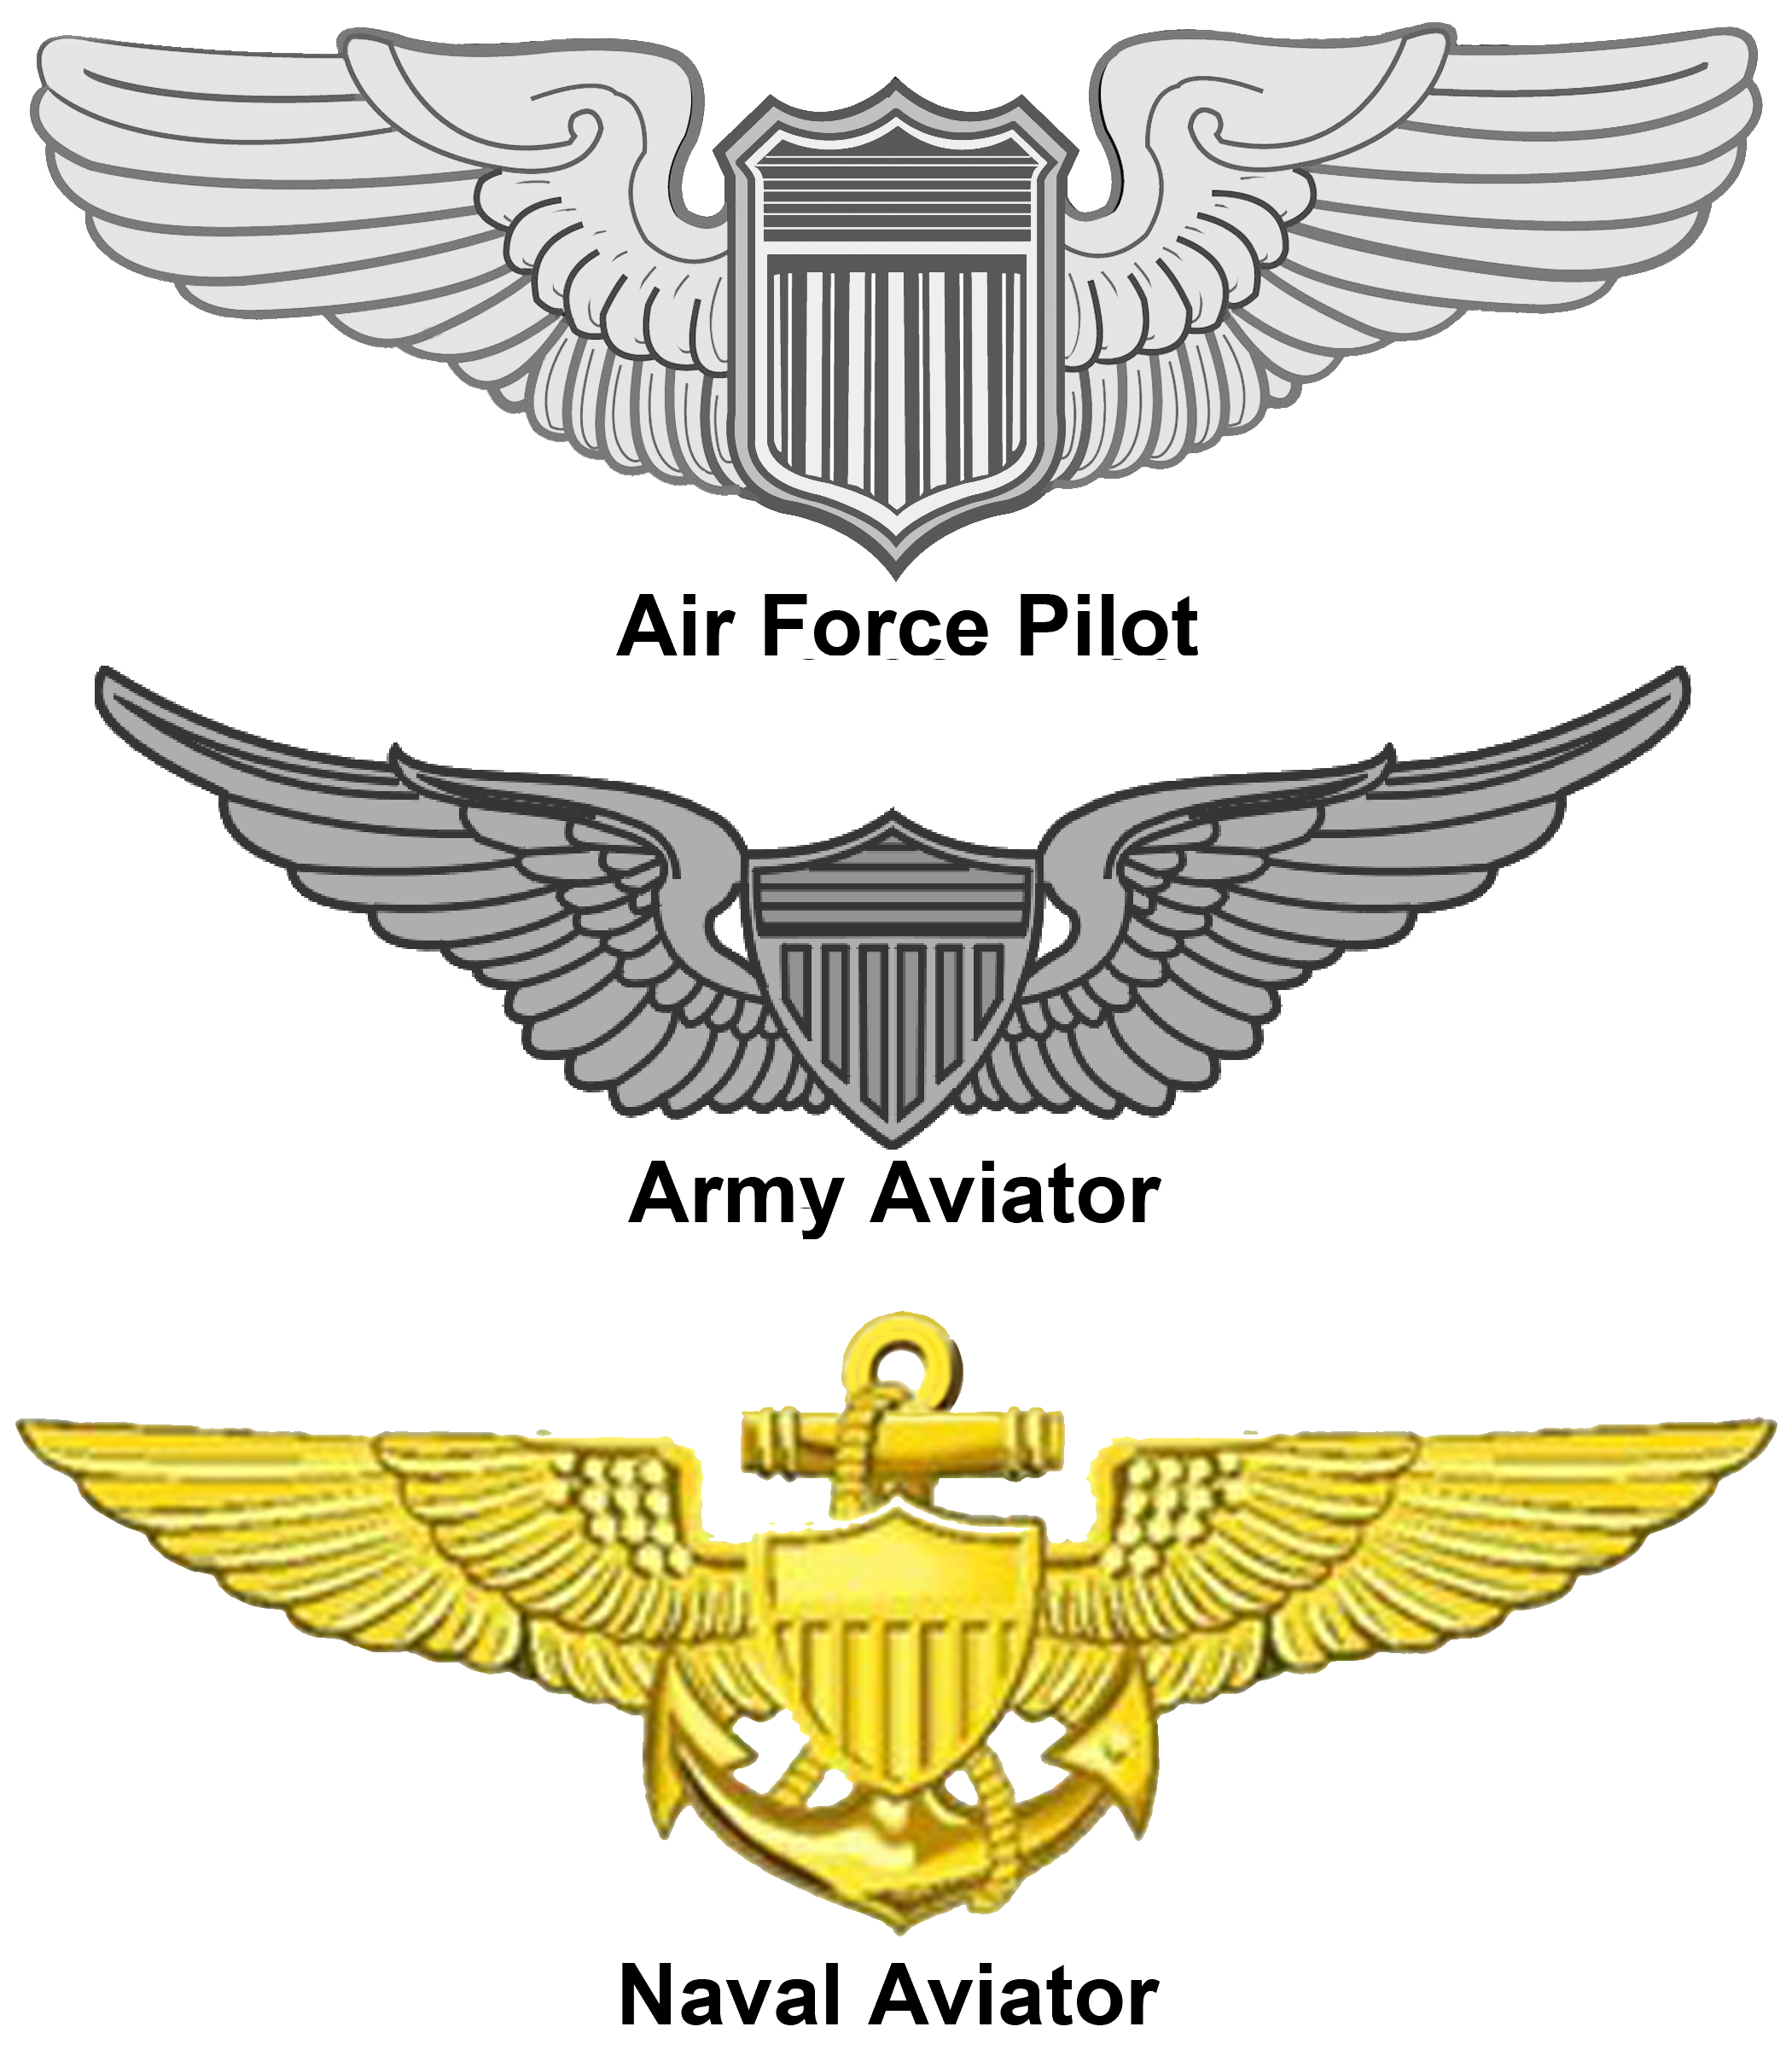 Airforce star clipart svg transparent stock United States Aviator Badge - Wikipedia svg transparent stock